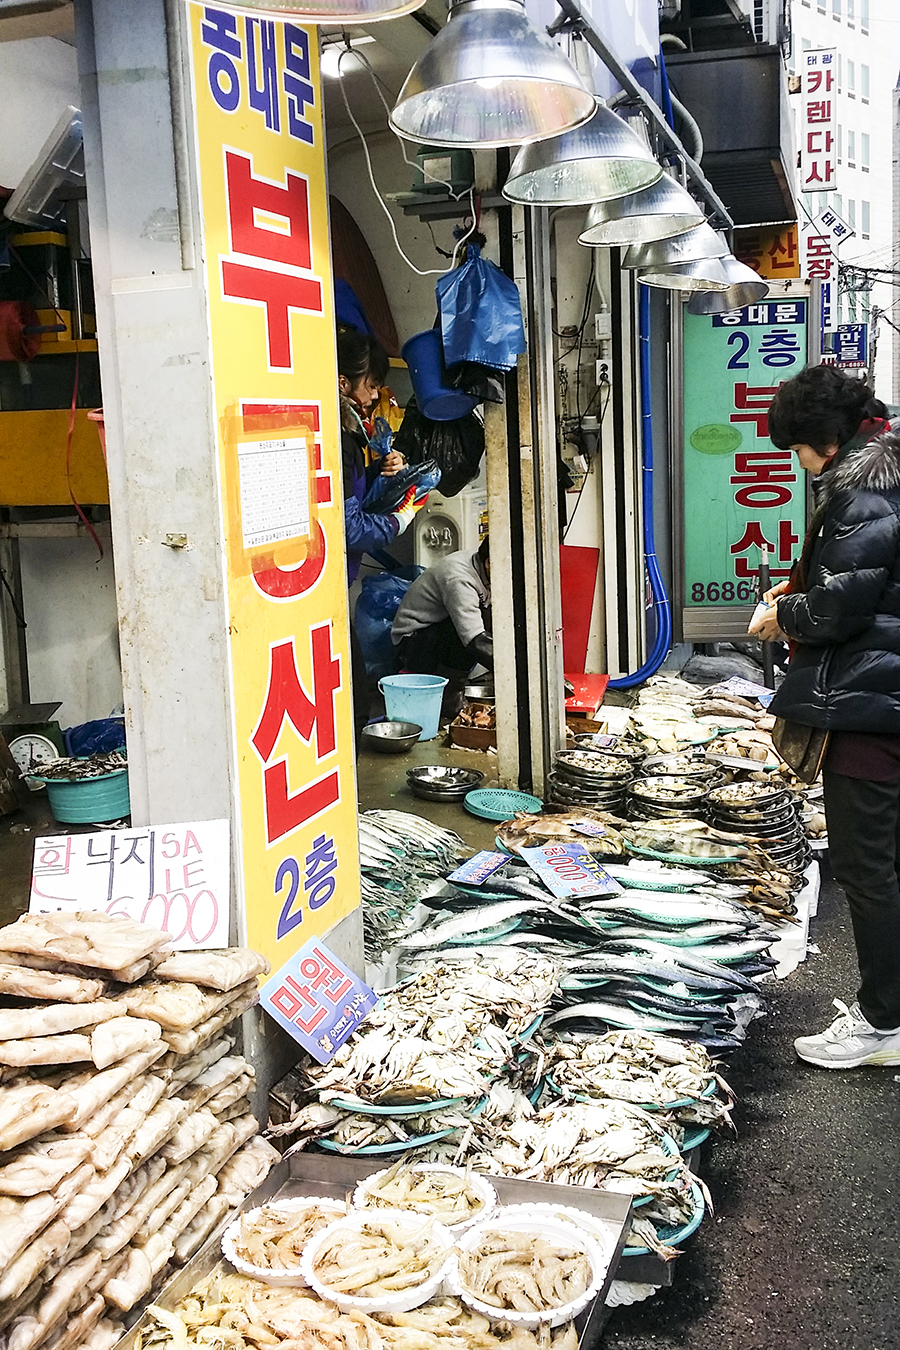 Fish store on the streets of Dongdaemun, Seoul, South Korea.